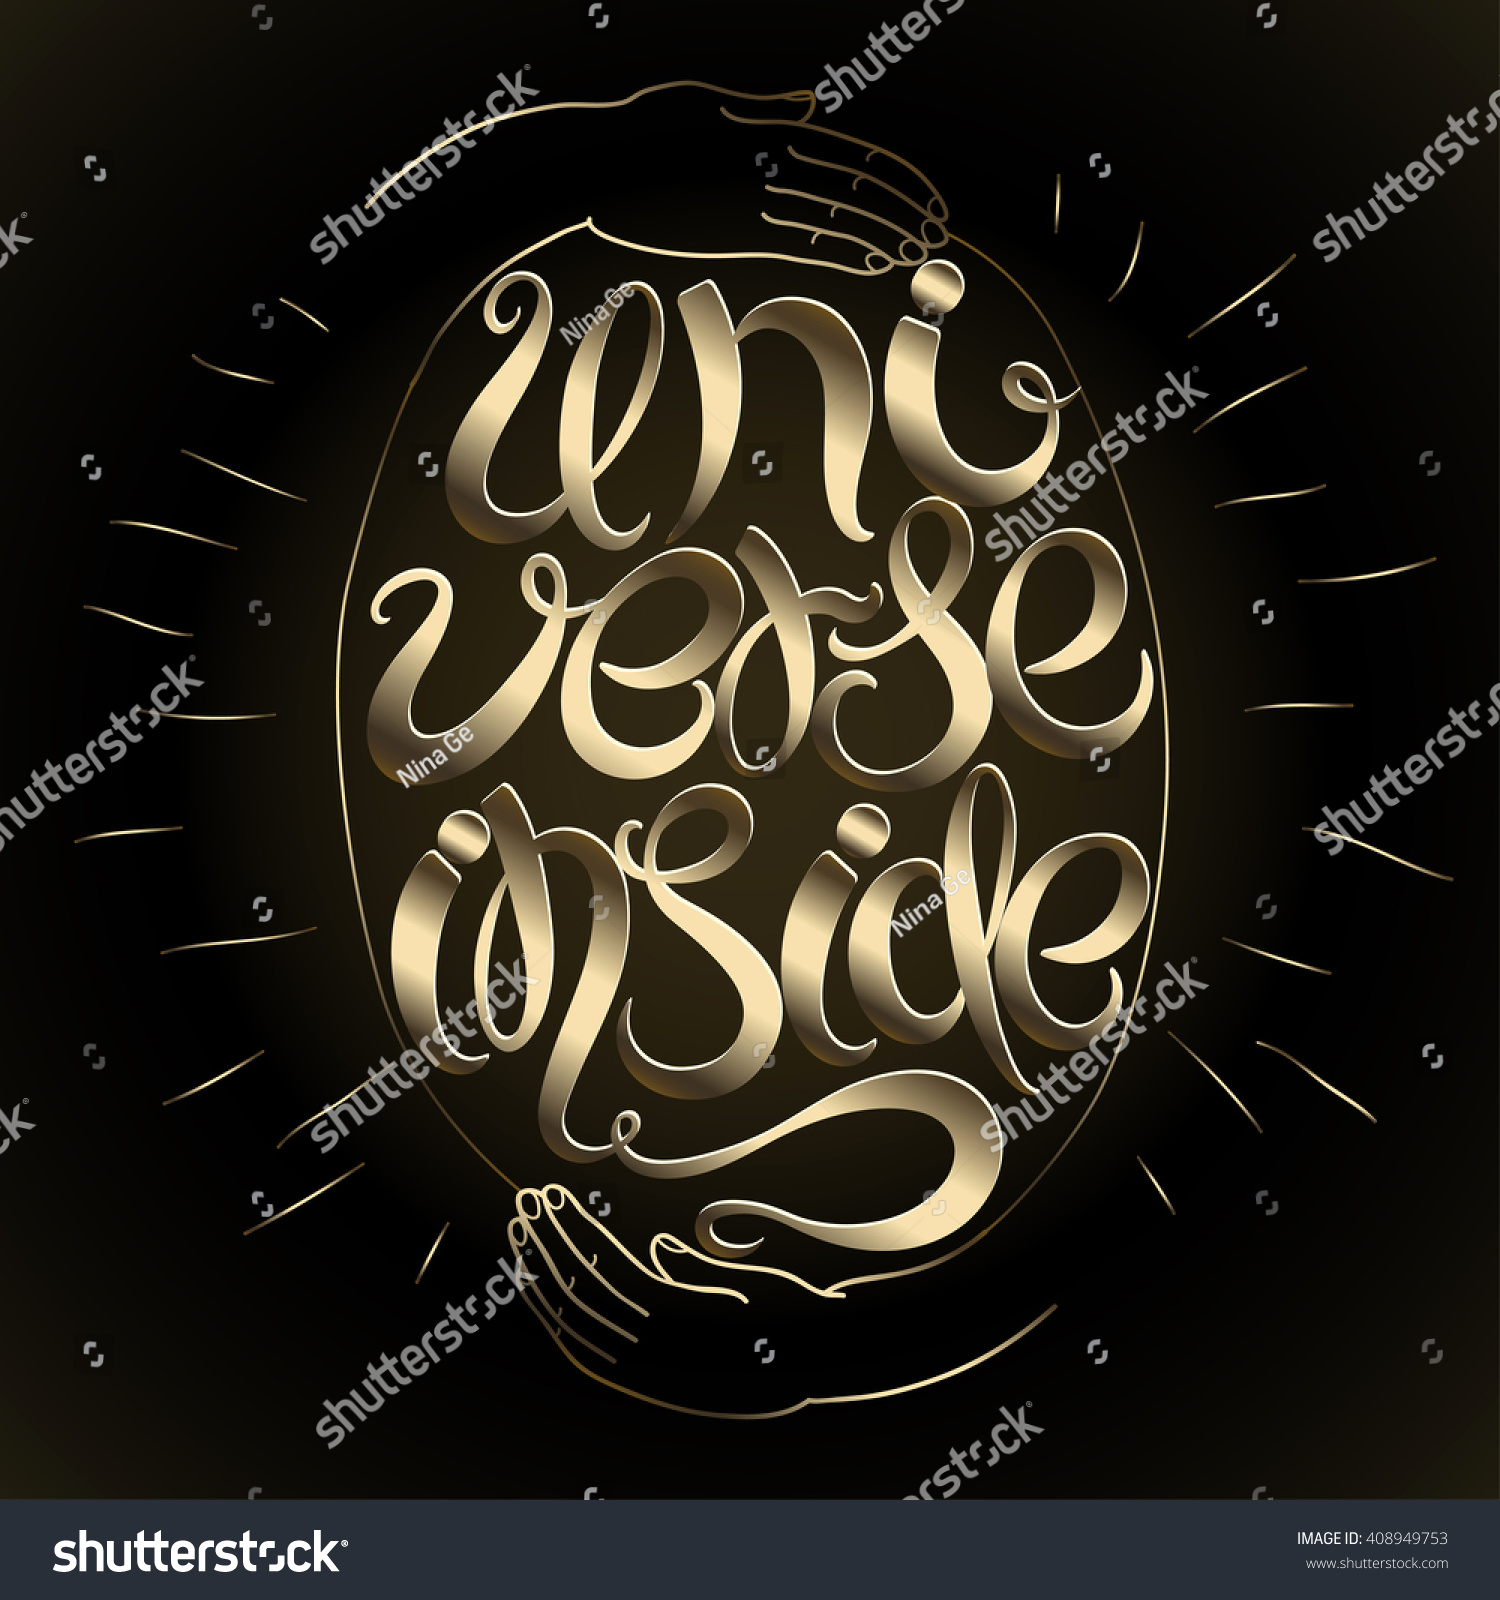 Universe Inside Inscription Greeting Card Calligraphy Stock Vector